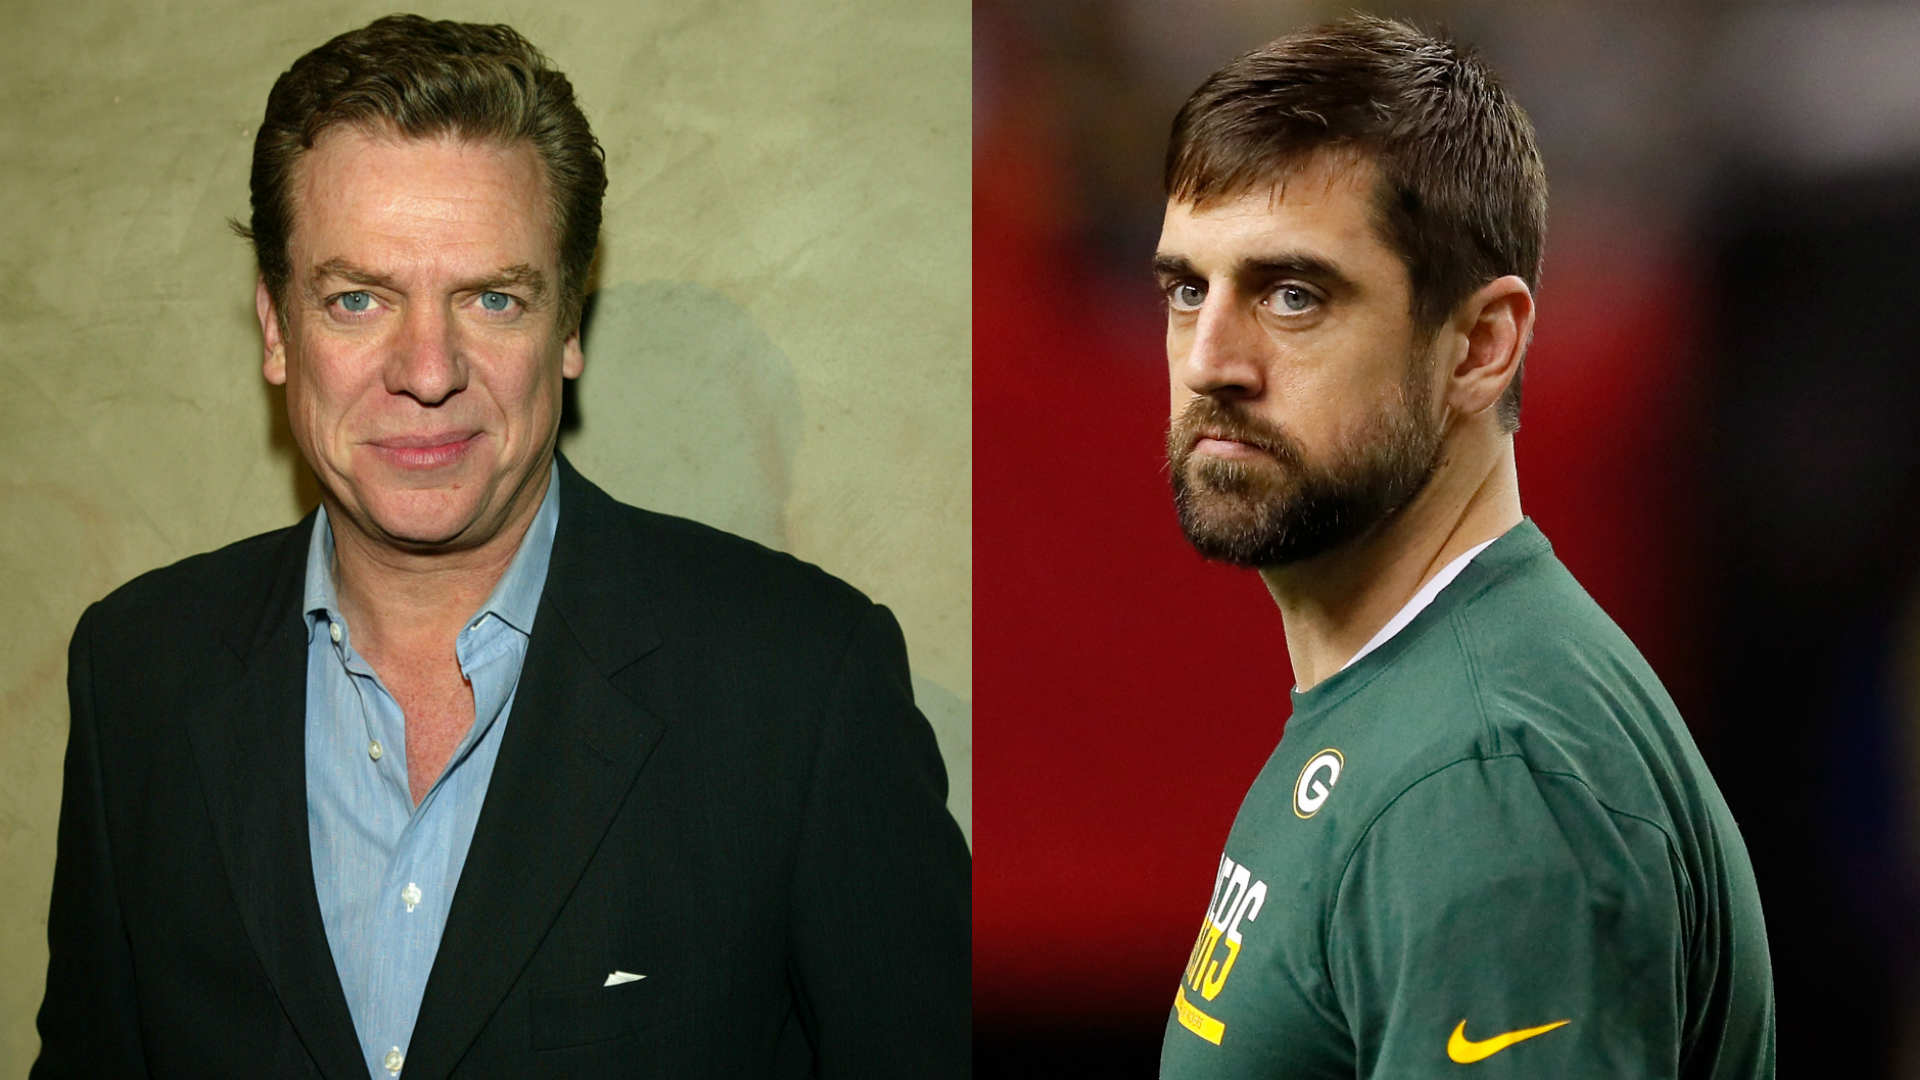 Aaron Rodgers gets into Twitter spat with 'Happy Gilmore ...